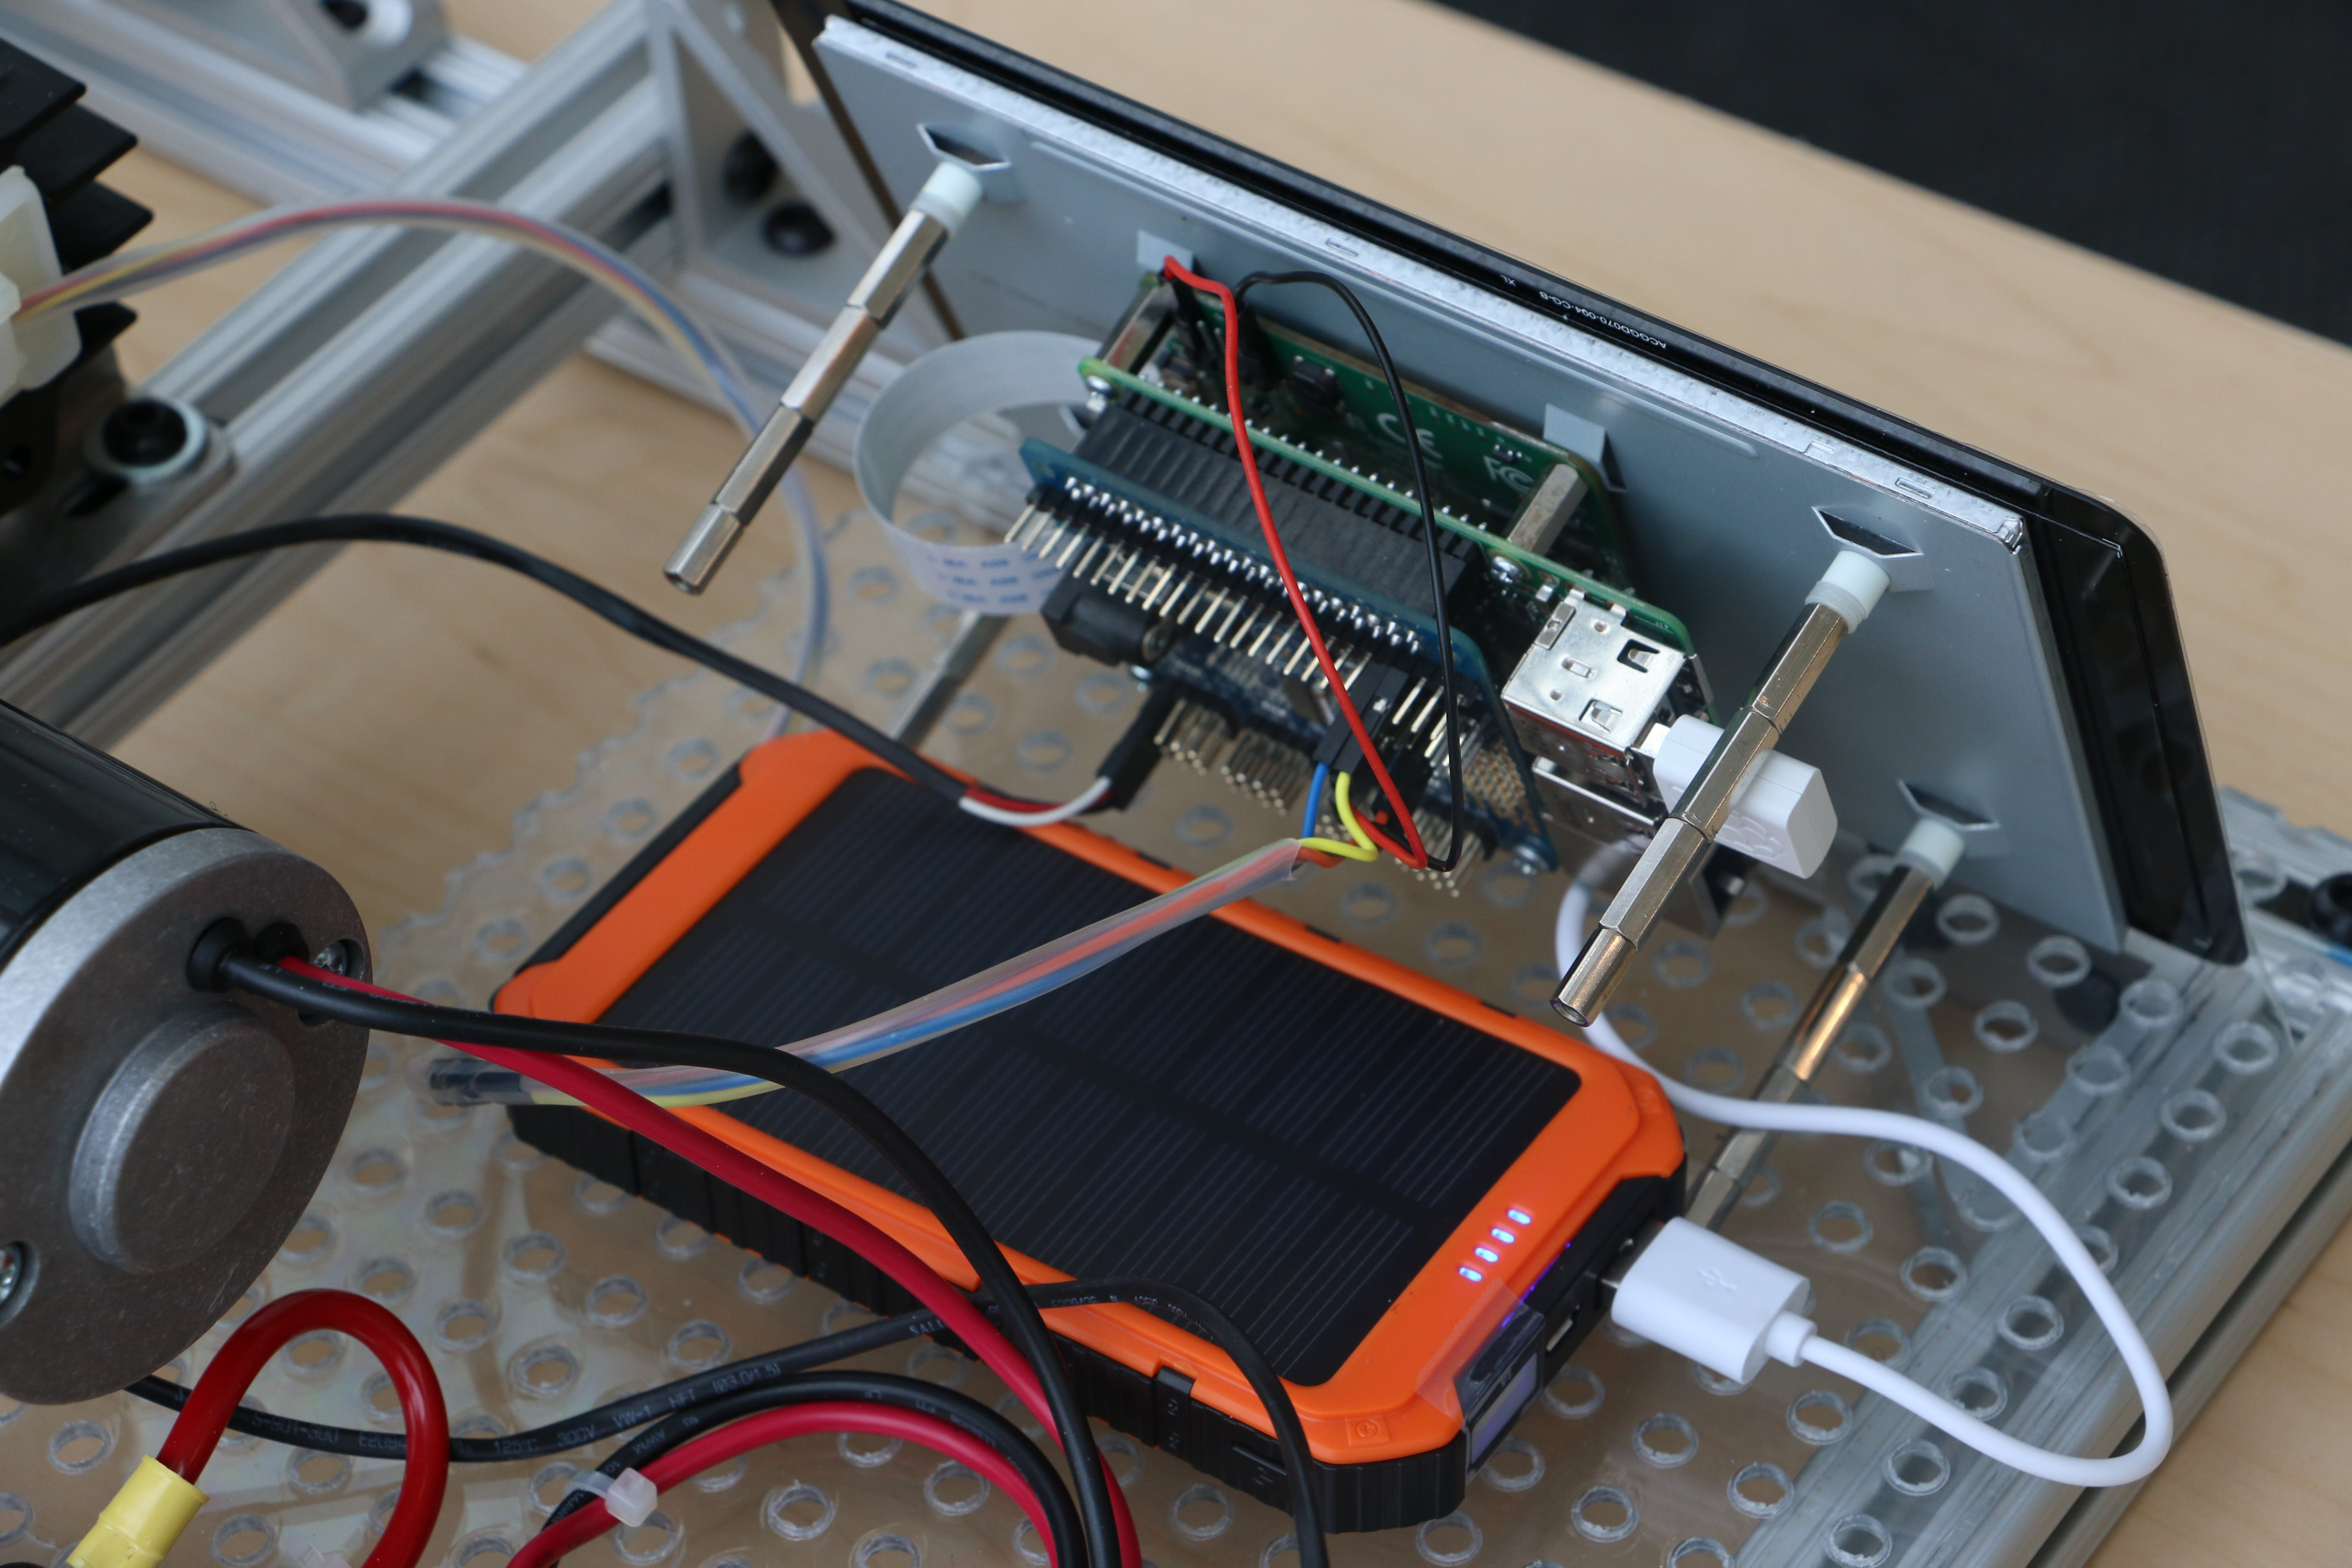 The orange solar powered battery pack powering the RPi3 and Touchscreen